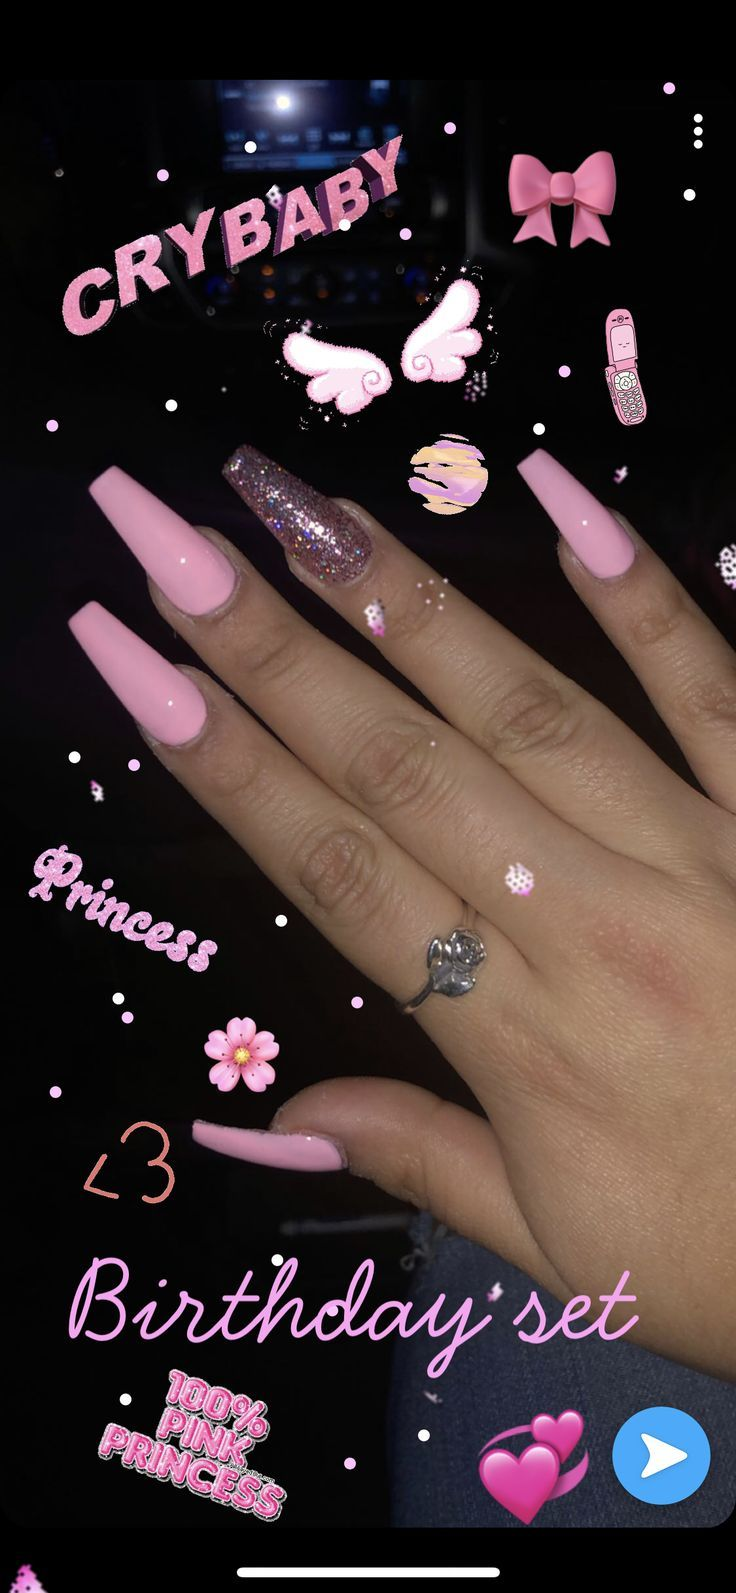 Summer Nails 2020 Color Trends Trending Baddie Nails Gel Acrylic And Natural These Twenty 2020 Summer Nails Color Trends And Styles Are Sure To Guaran In 2020